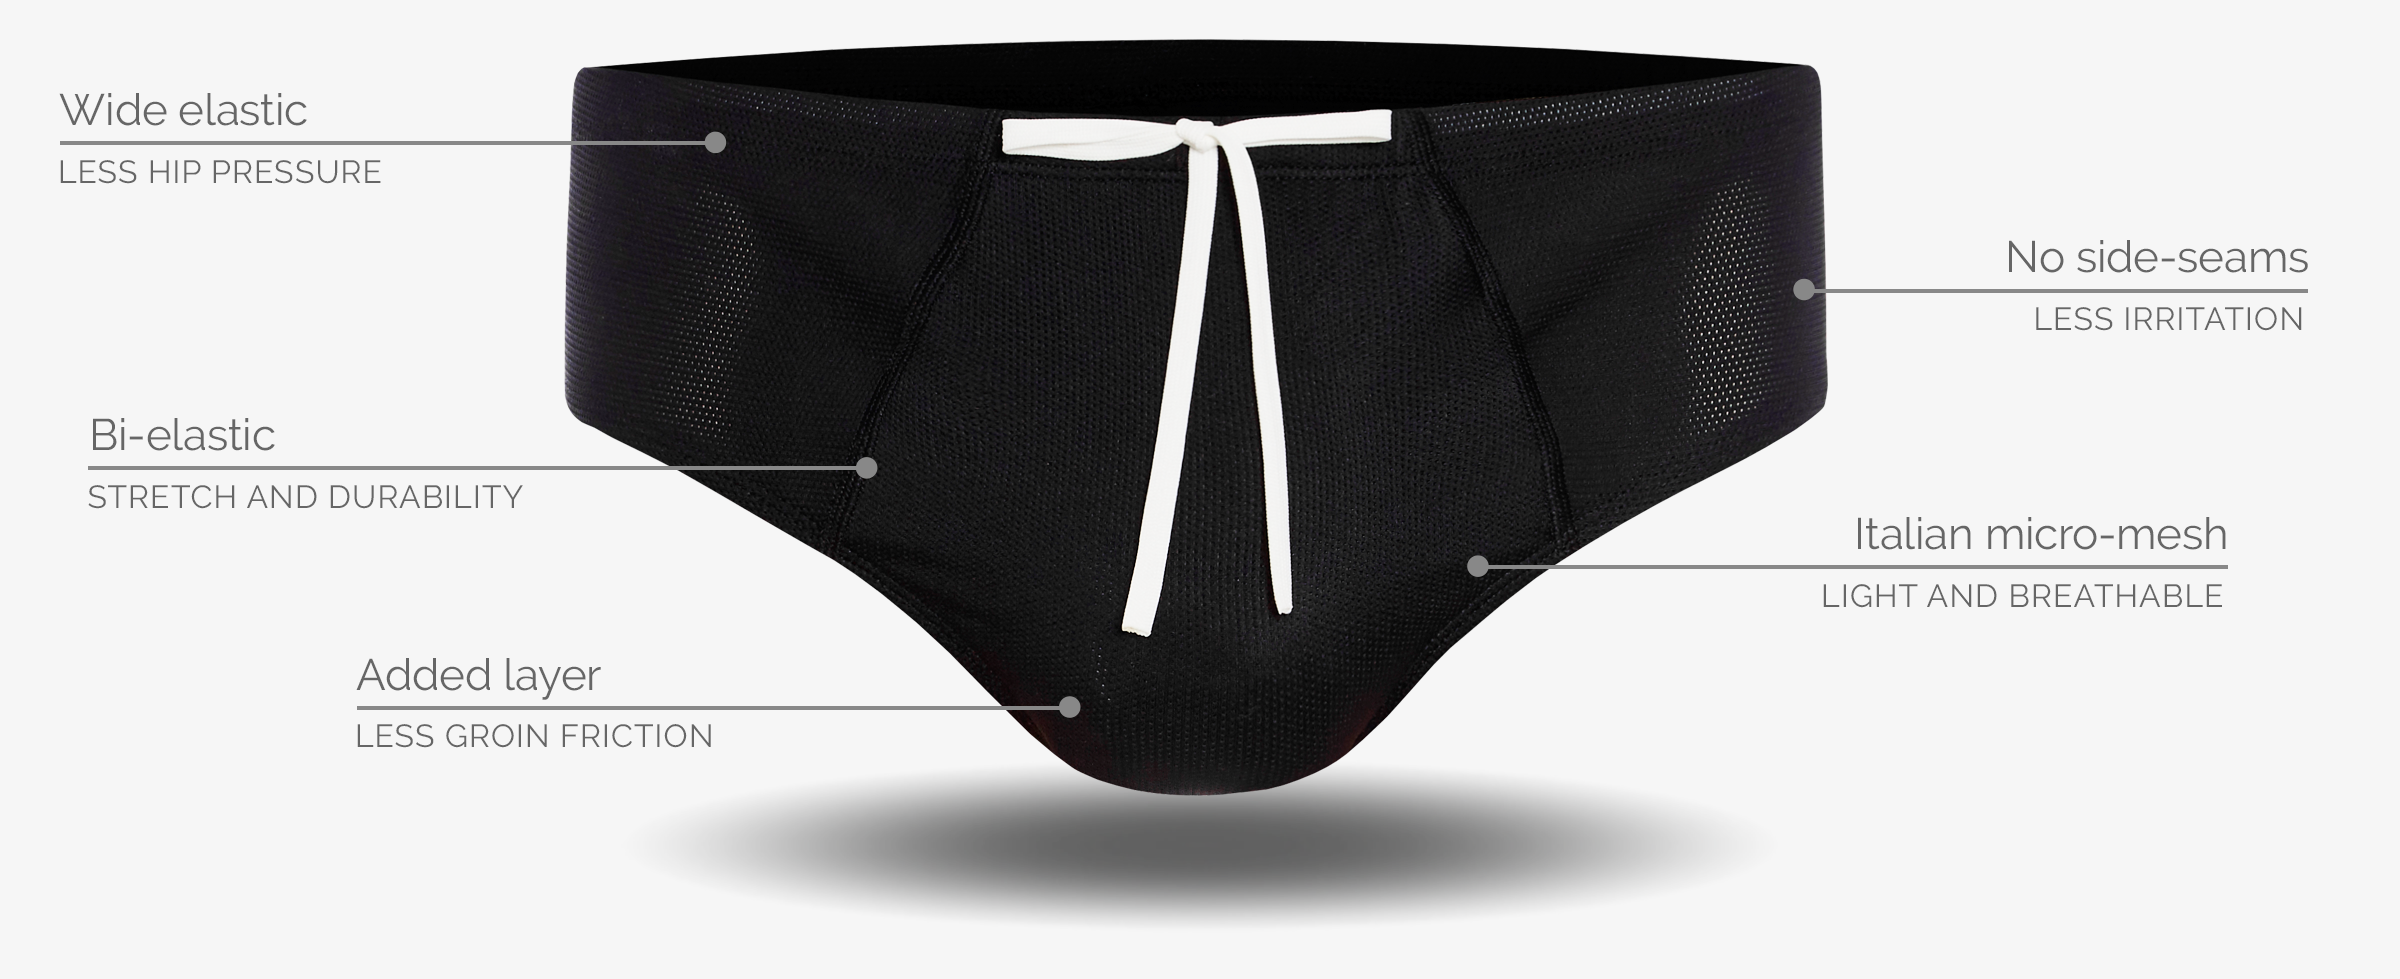 Men's technical sports underwear / briefs